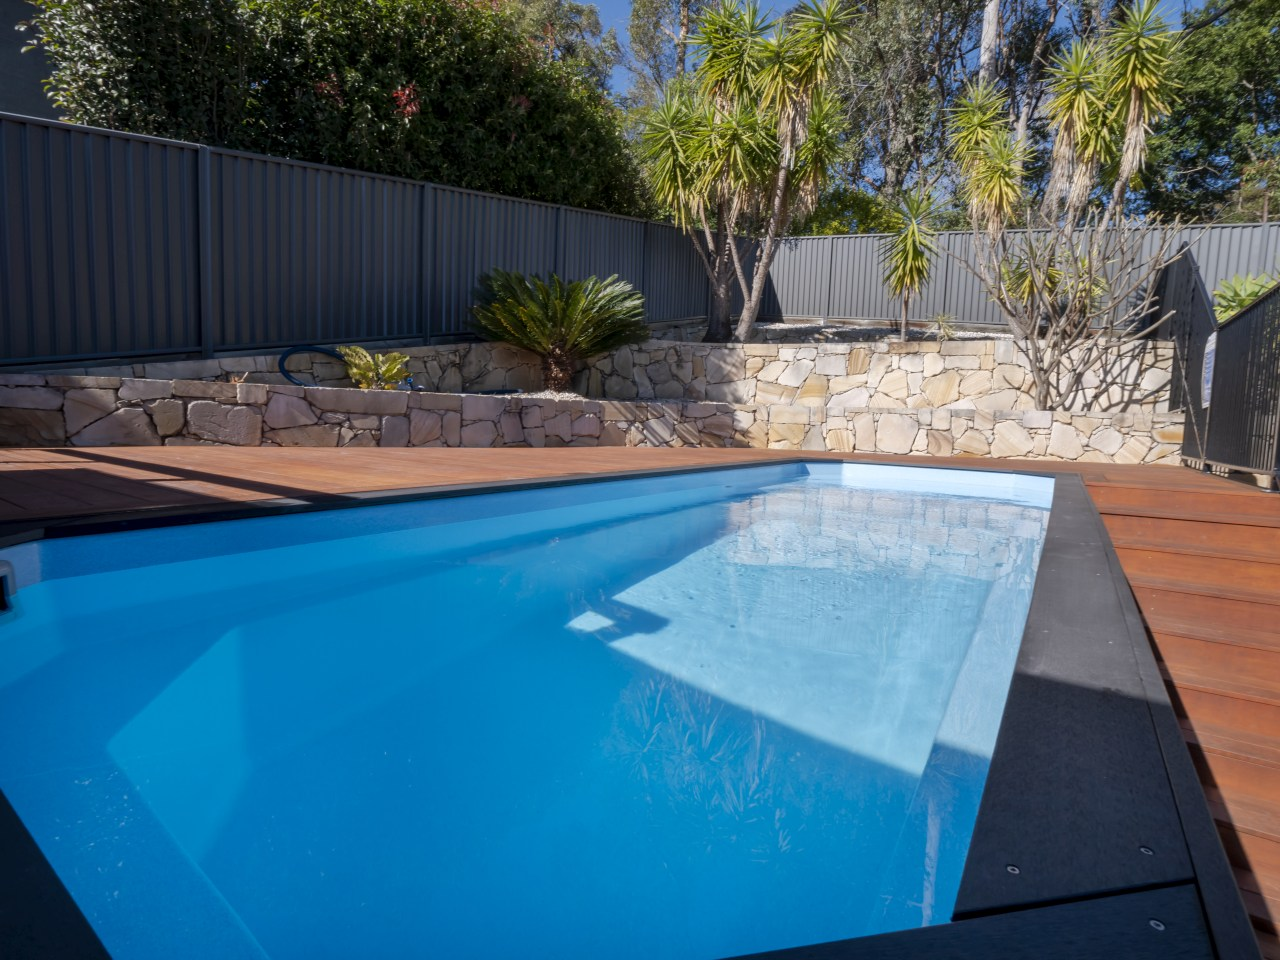 ez plunge pool Relax above ground pool installation 2a